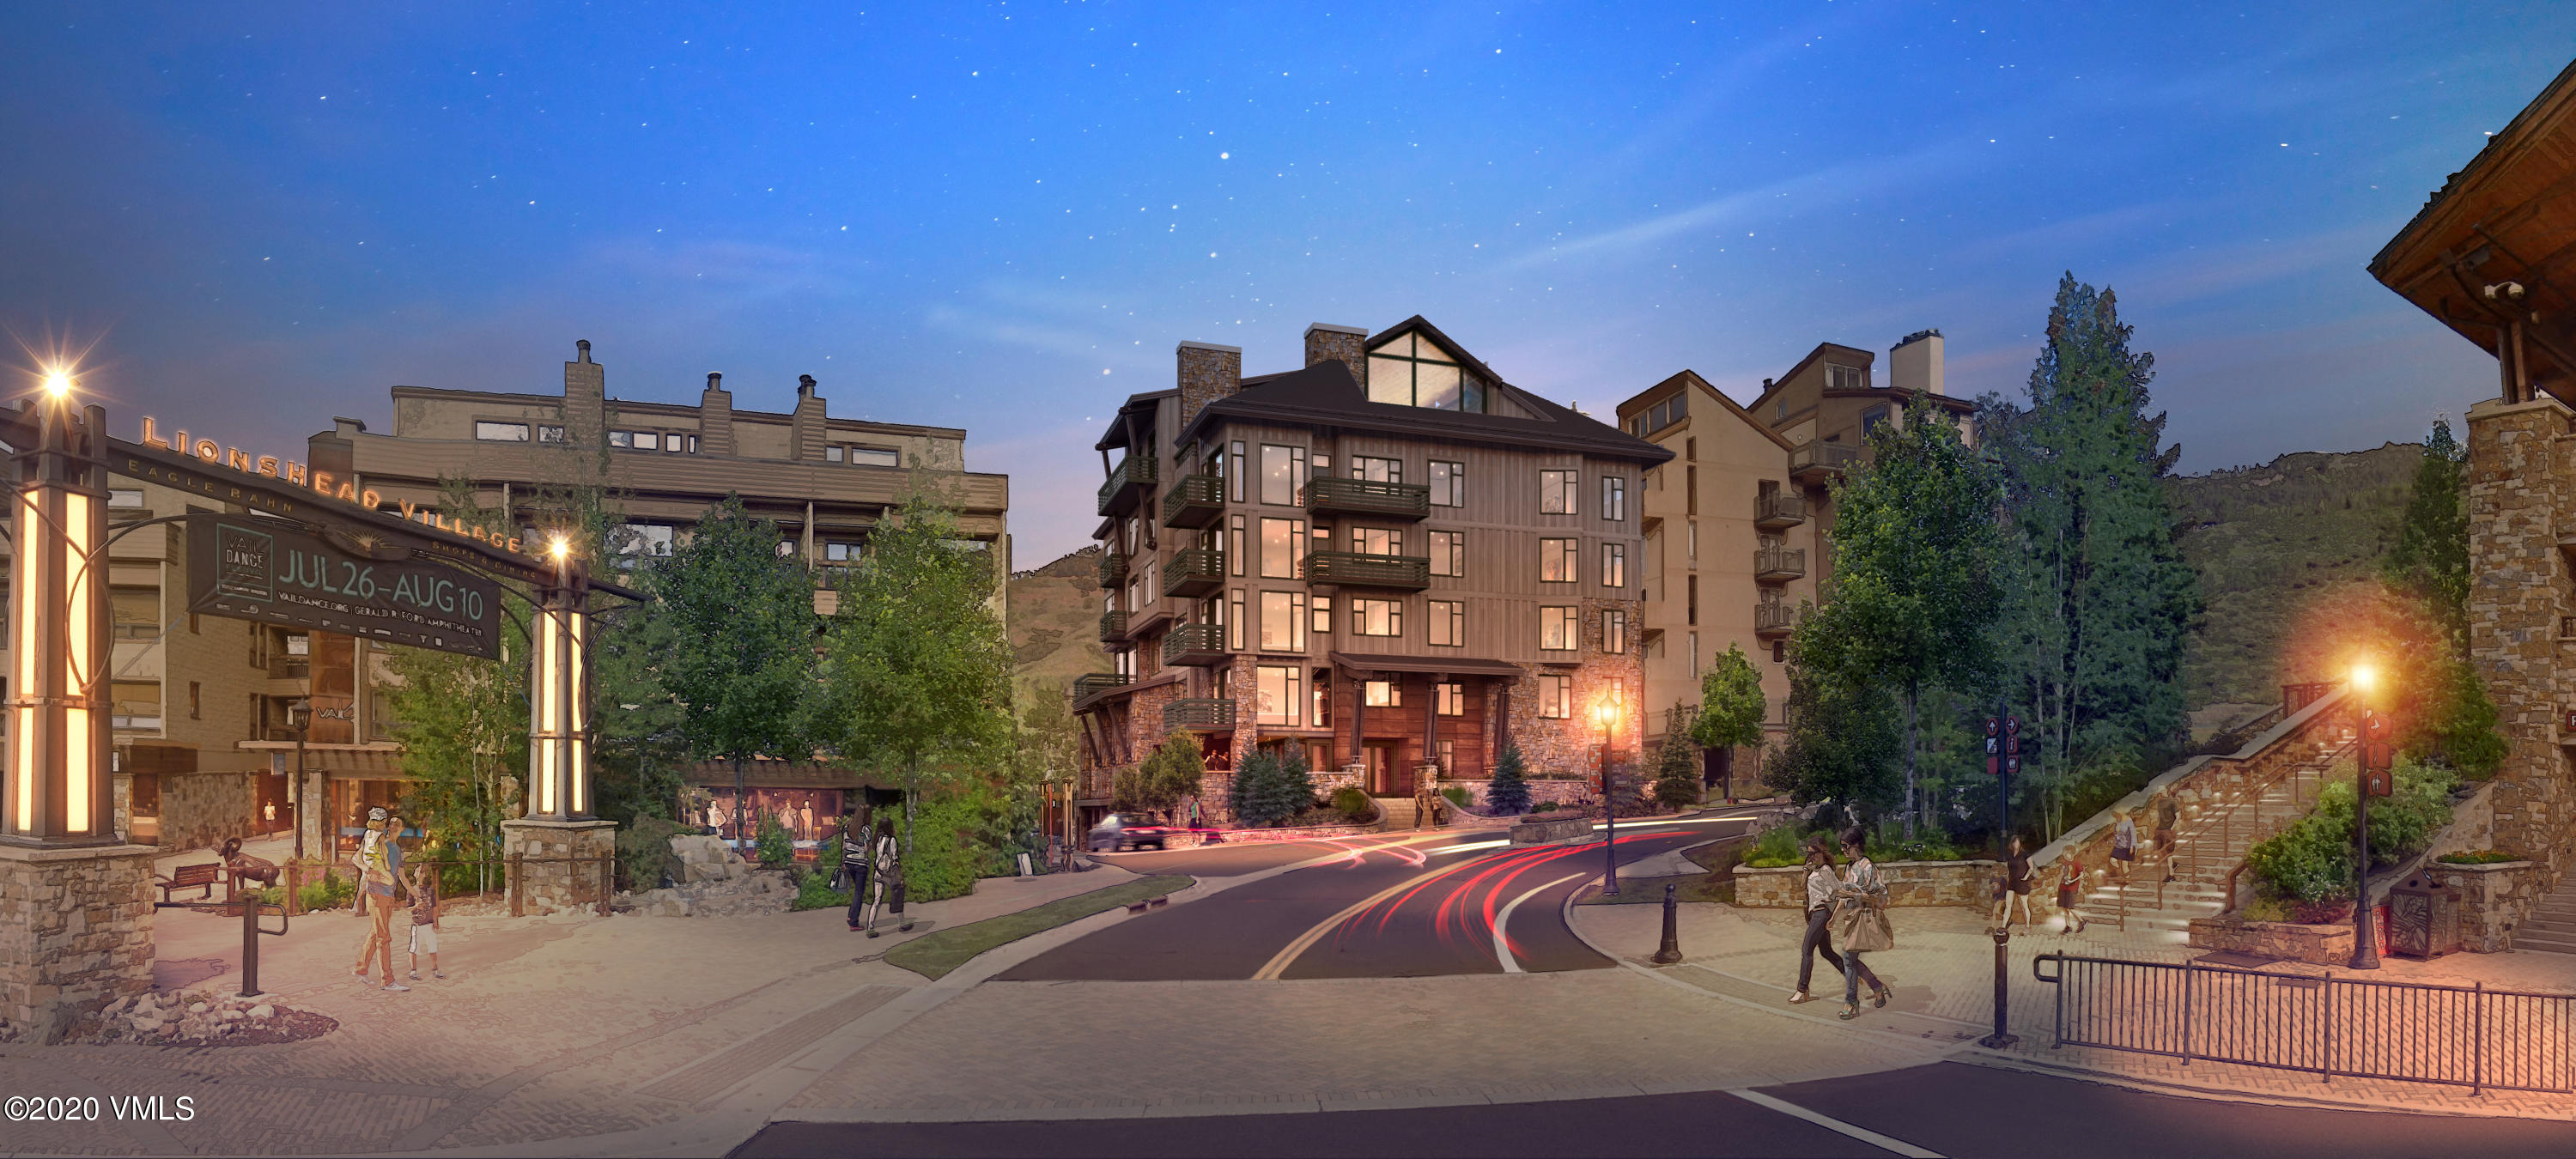 Step into Vail's newest premier mountain contemporary living, ELEVATION, located in the heart of Lionshead Village, just steps from the gondola and the world's premier ski and summer resort area.  The pre-sale launch is now occurring, as the three-year design project delivers the ultimate in lifestyle living, including private garage and elevator access, a welcoming lobby with coffee bar, fitness room and outdoor hot tub as well as private ski storage spacious locker rooms.Ranging in size from 2,396 sq. ft. to 2,908 sq. ft., only eight residences are available and just two per floor.  Each provides contemporary open air living and dining spaces, private bedroom and office areas and outdoor deck with mountain, valley or village views.  Owners arrive at their door step via elevator where they will find state-of-the-art security and high tech comfort, including heated tile and wood floors and AC that are App controlled, as well as plumbed-in oxygenated systems that offer lower level altitude sleeping environments.  Vail's premier residence is designed to appeal to the discriminating buyer, including the selection of finishes and appliances.  Brands such as Wolf, Subzero, Kohler, Roll, Asko and Waterworks add to the overall interior appeal of the warm mountain and earth tones that seamlessly blend living spaces with Vail's nature-based setting.  Marble bath and shower, Walks white flooring and slab countertops are just some of the highlights of what fortunate owners can expect from what will be Vail's new premier residence.https://elevationvail.com/mls/